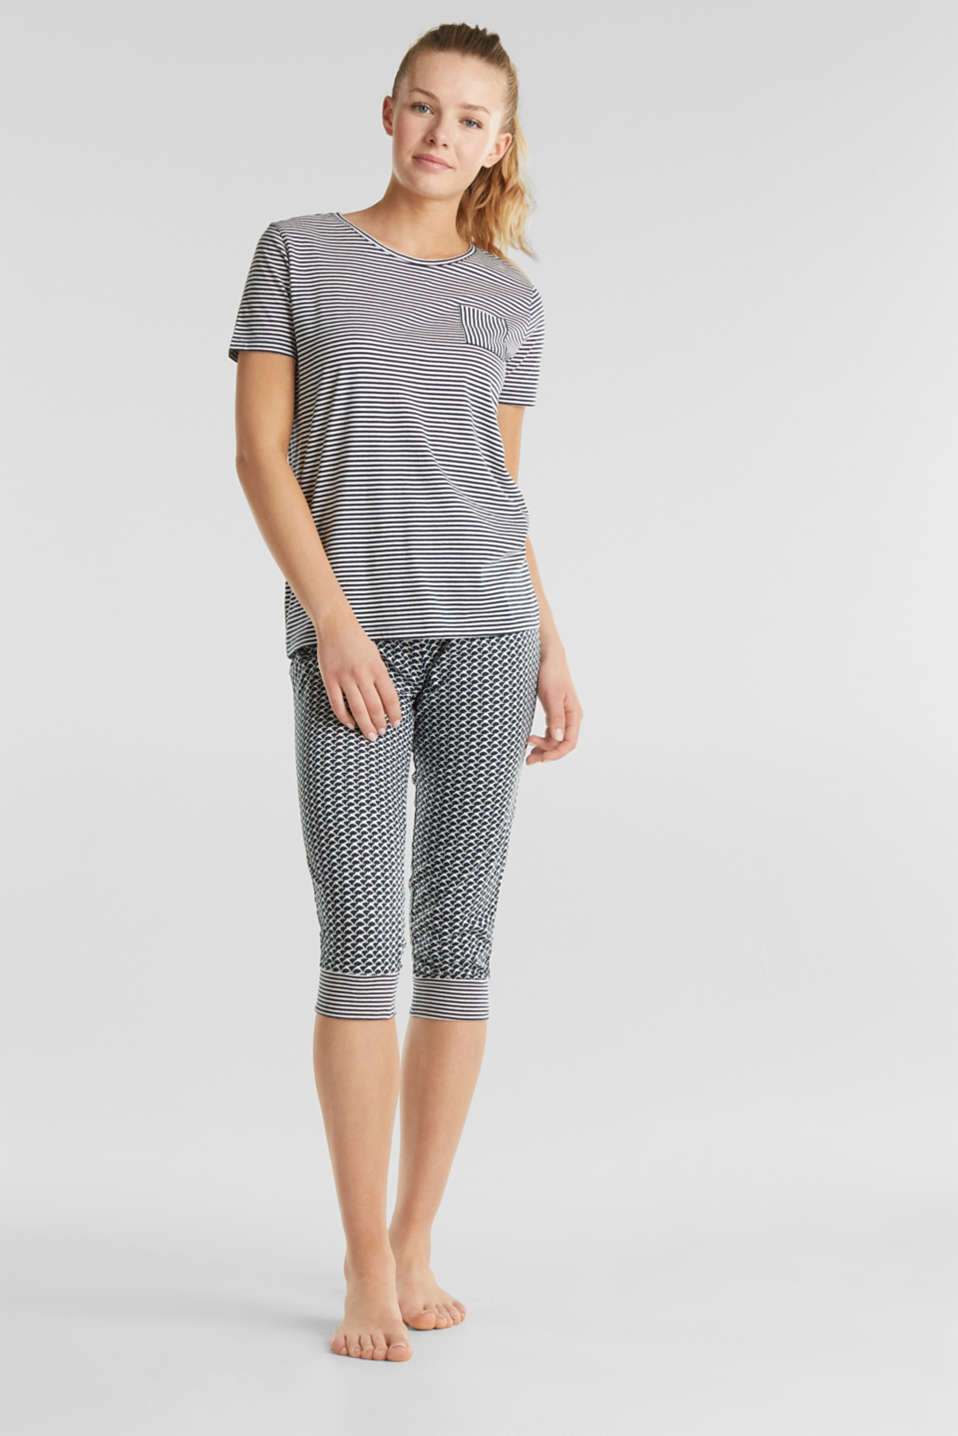 Esprit - Jersey pyjamas in a mix of patterns